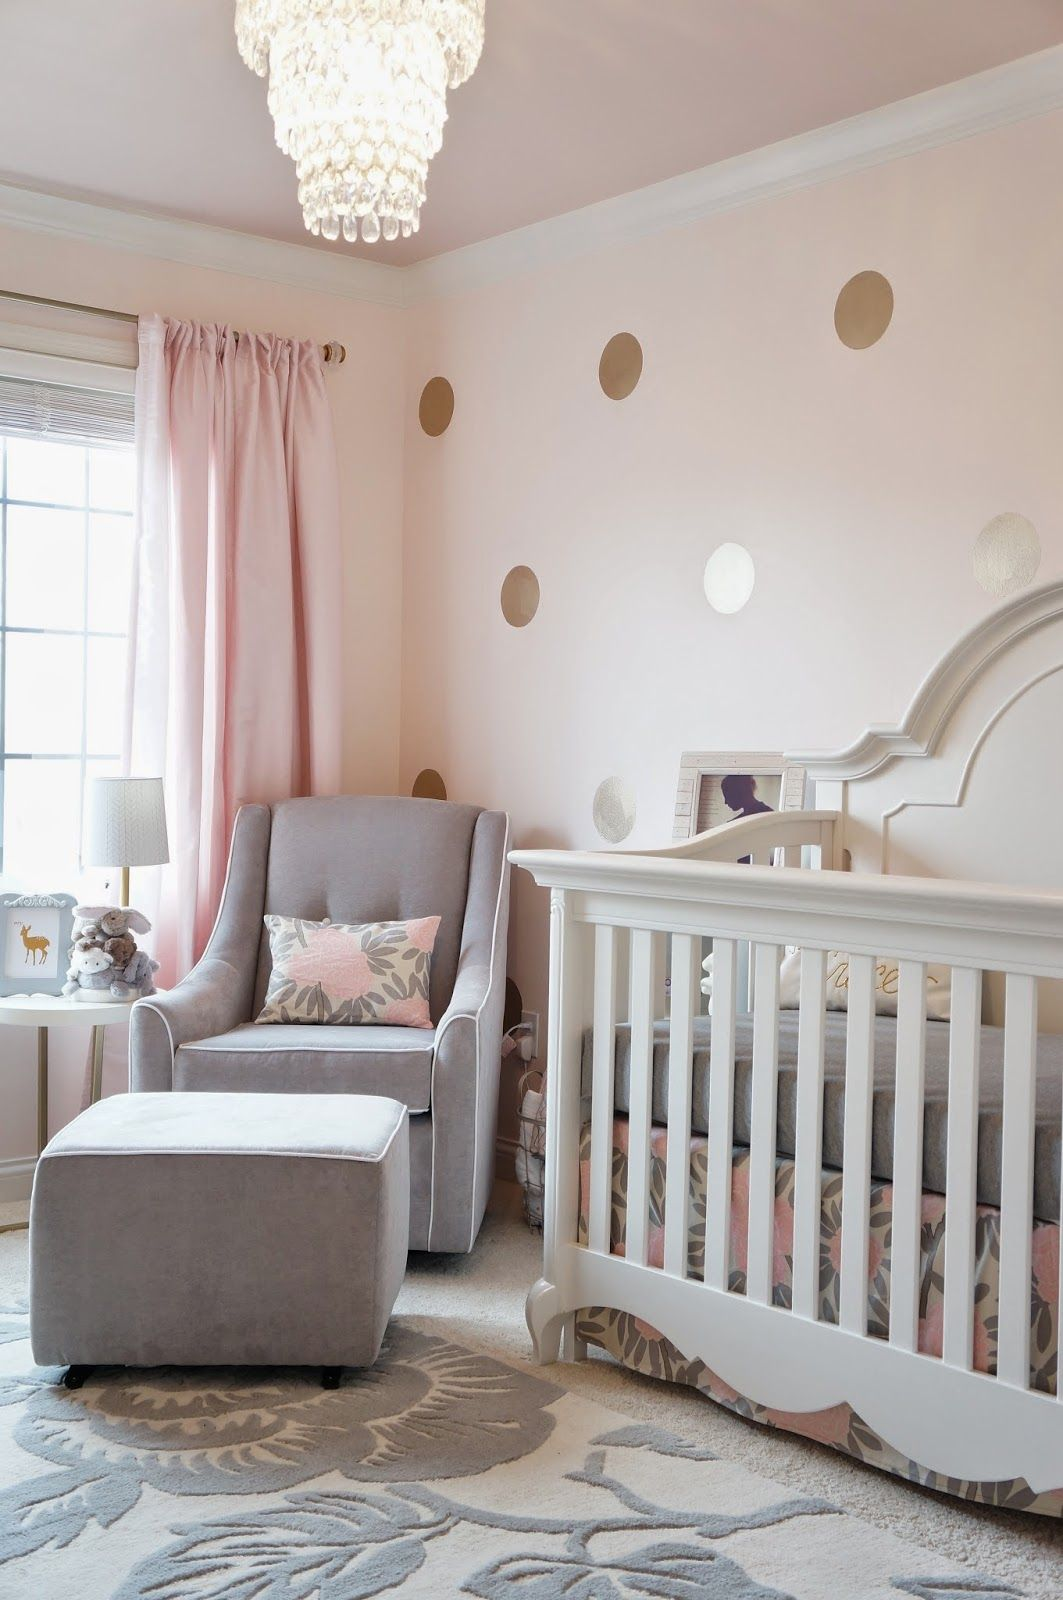 39 id es inspirations pour la d coration de la chambre b b photos pink grey house for Deco chambre bebe mansardee 2